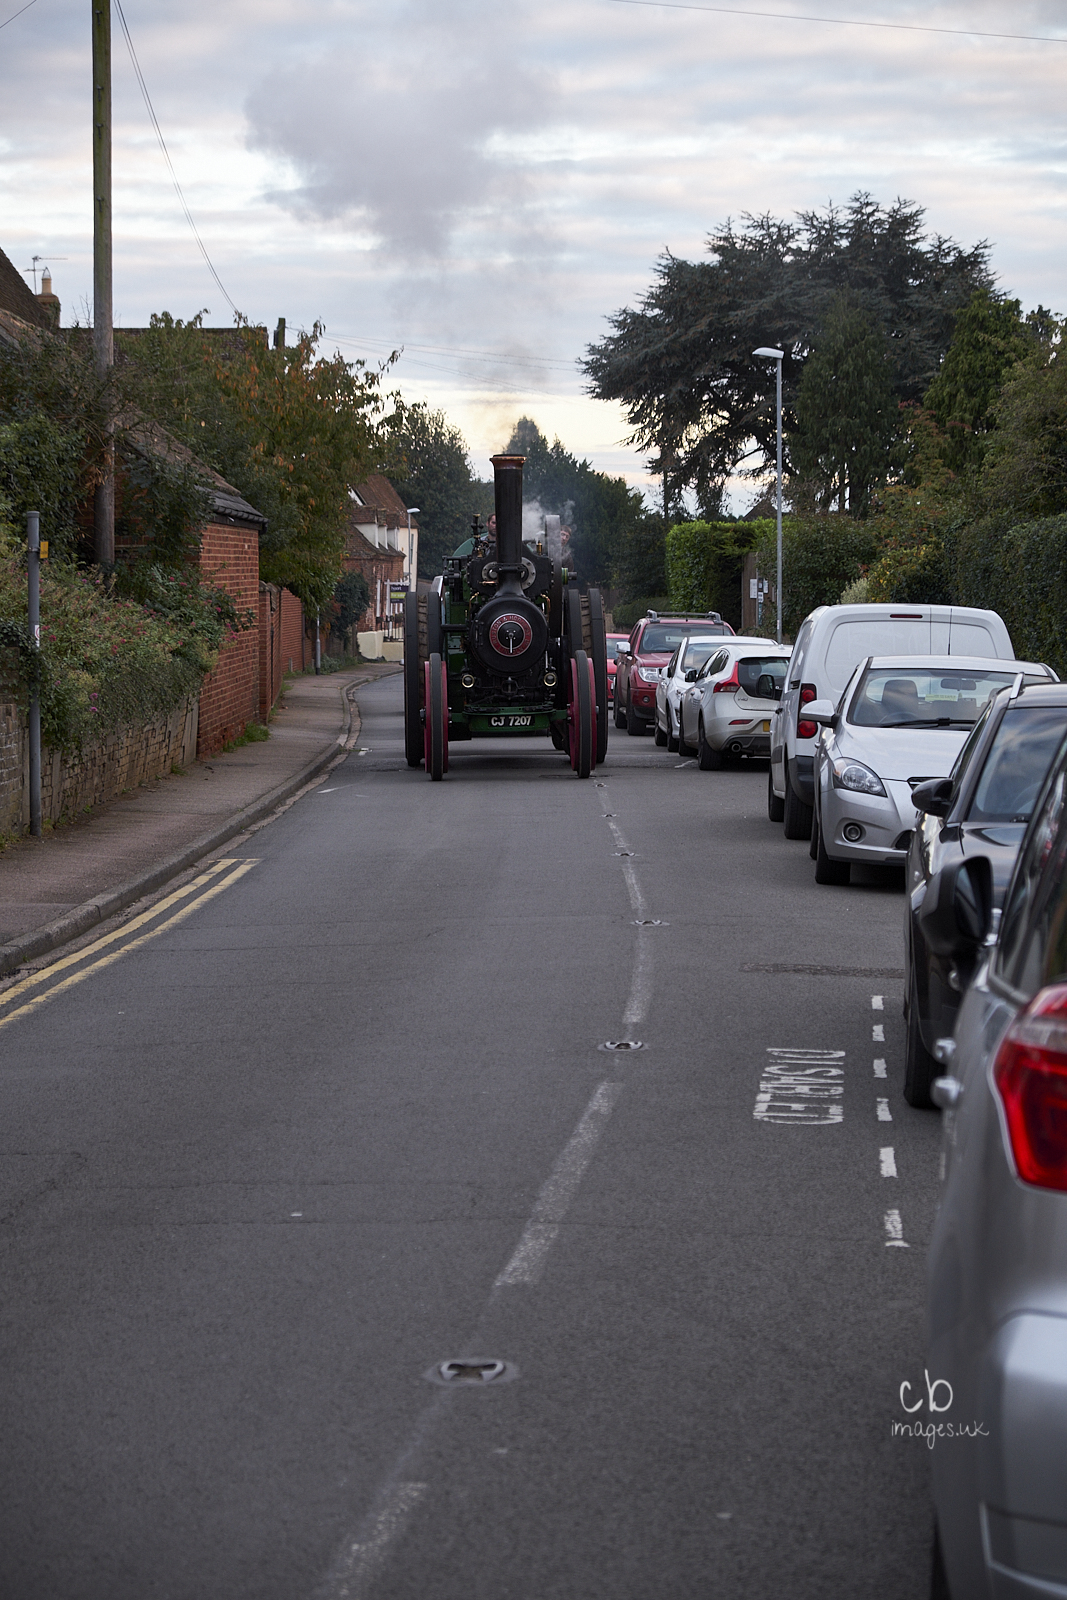 A steam traction engine approaches past a line of modern cars parked on the side of the street.